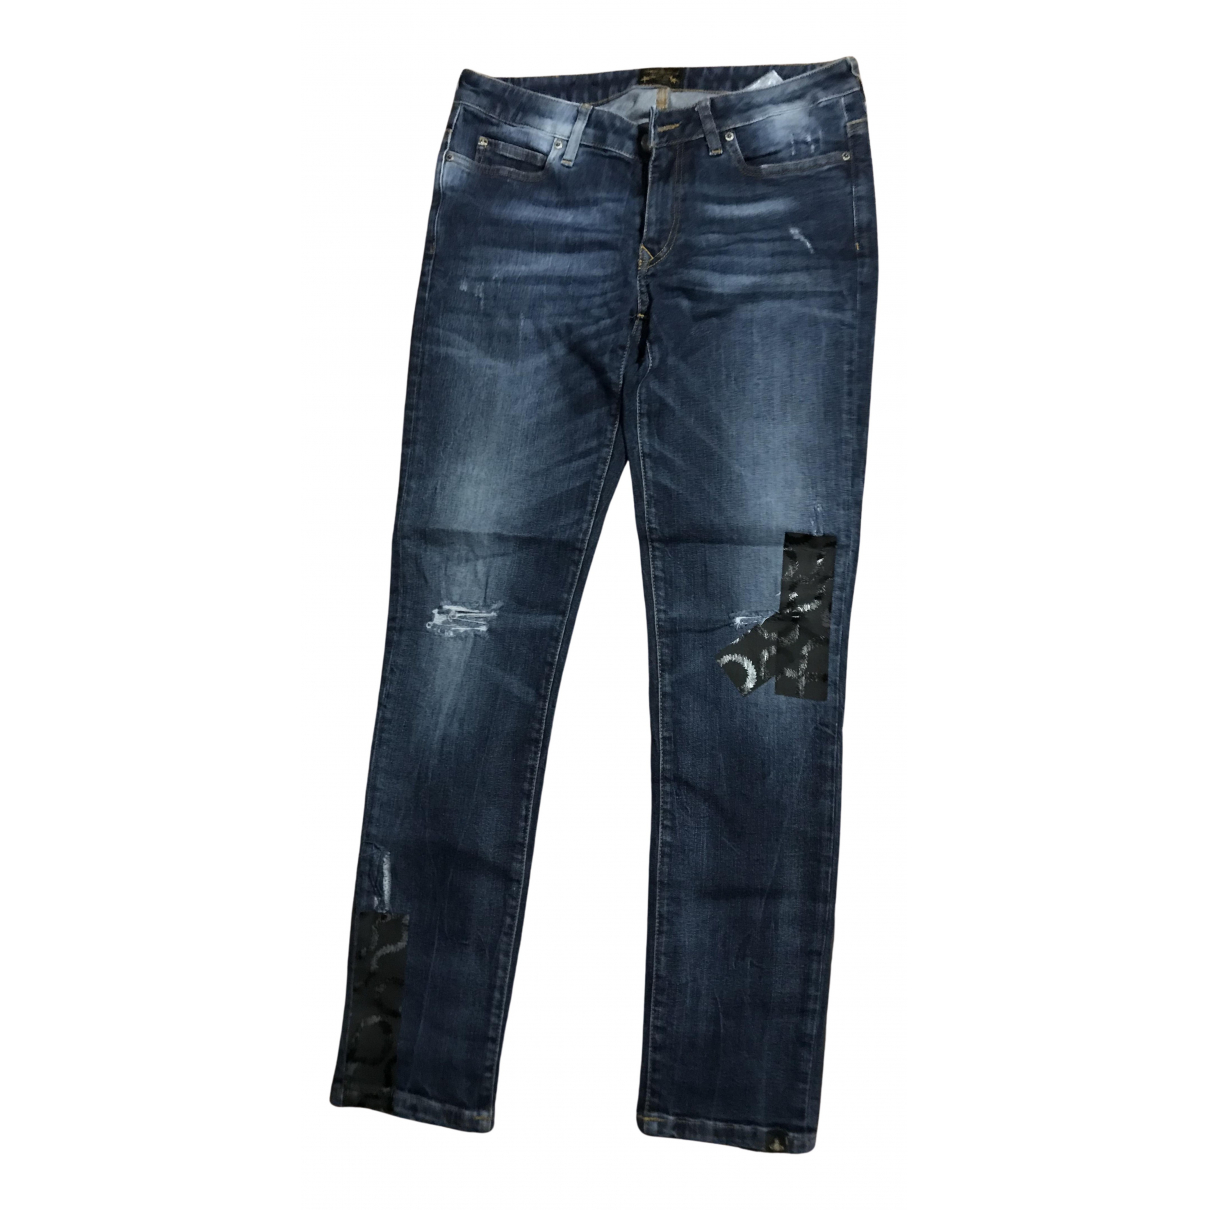 Vivienne Westwood Anglomania N Blue Denim - Jeans Jeans for Women 30 US